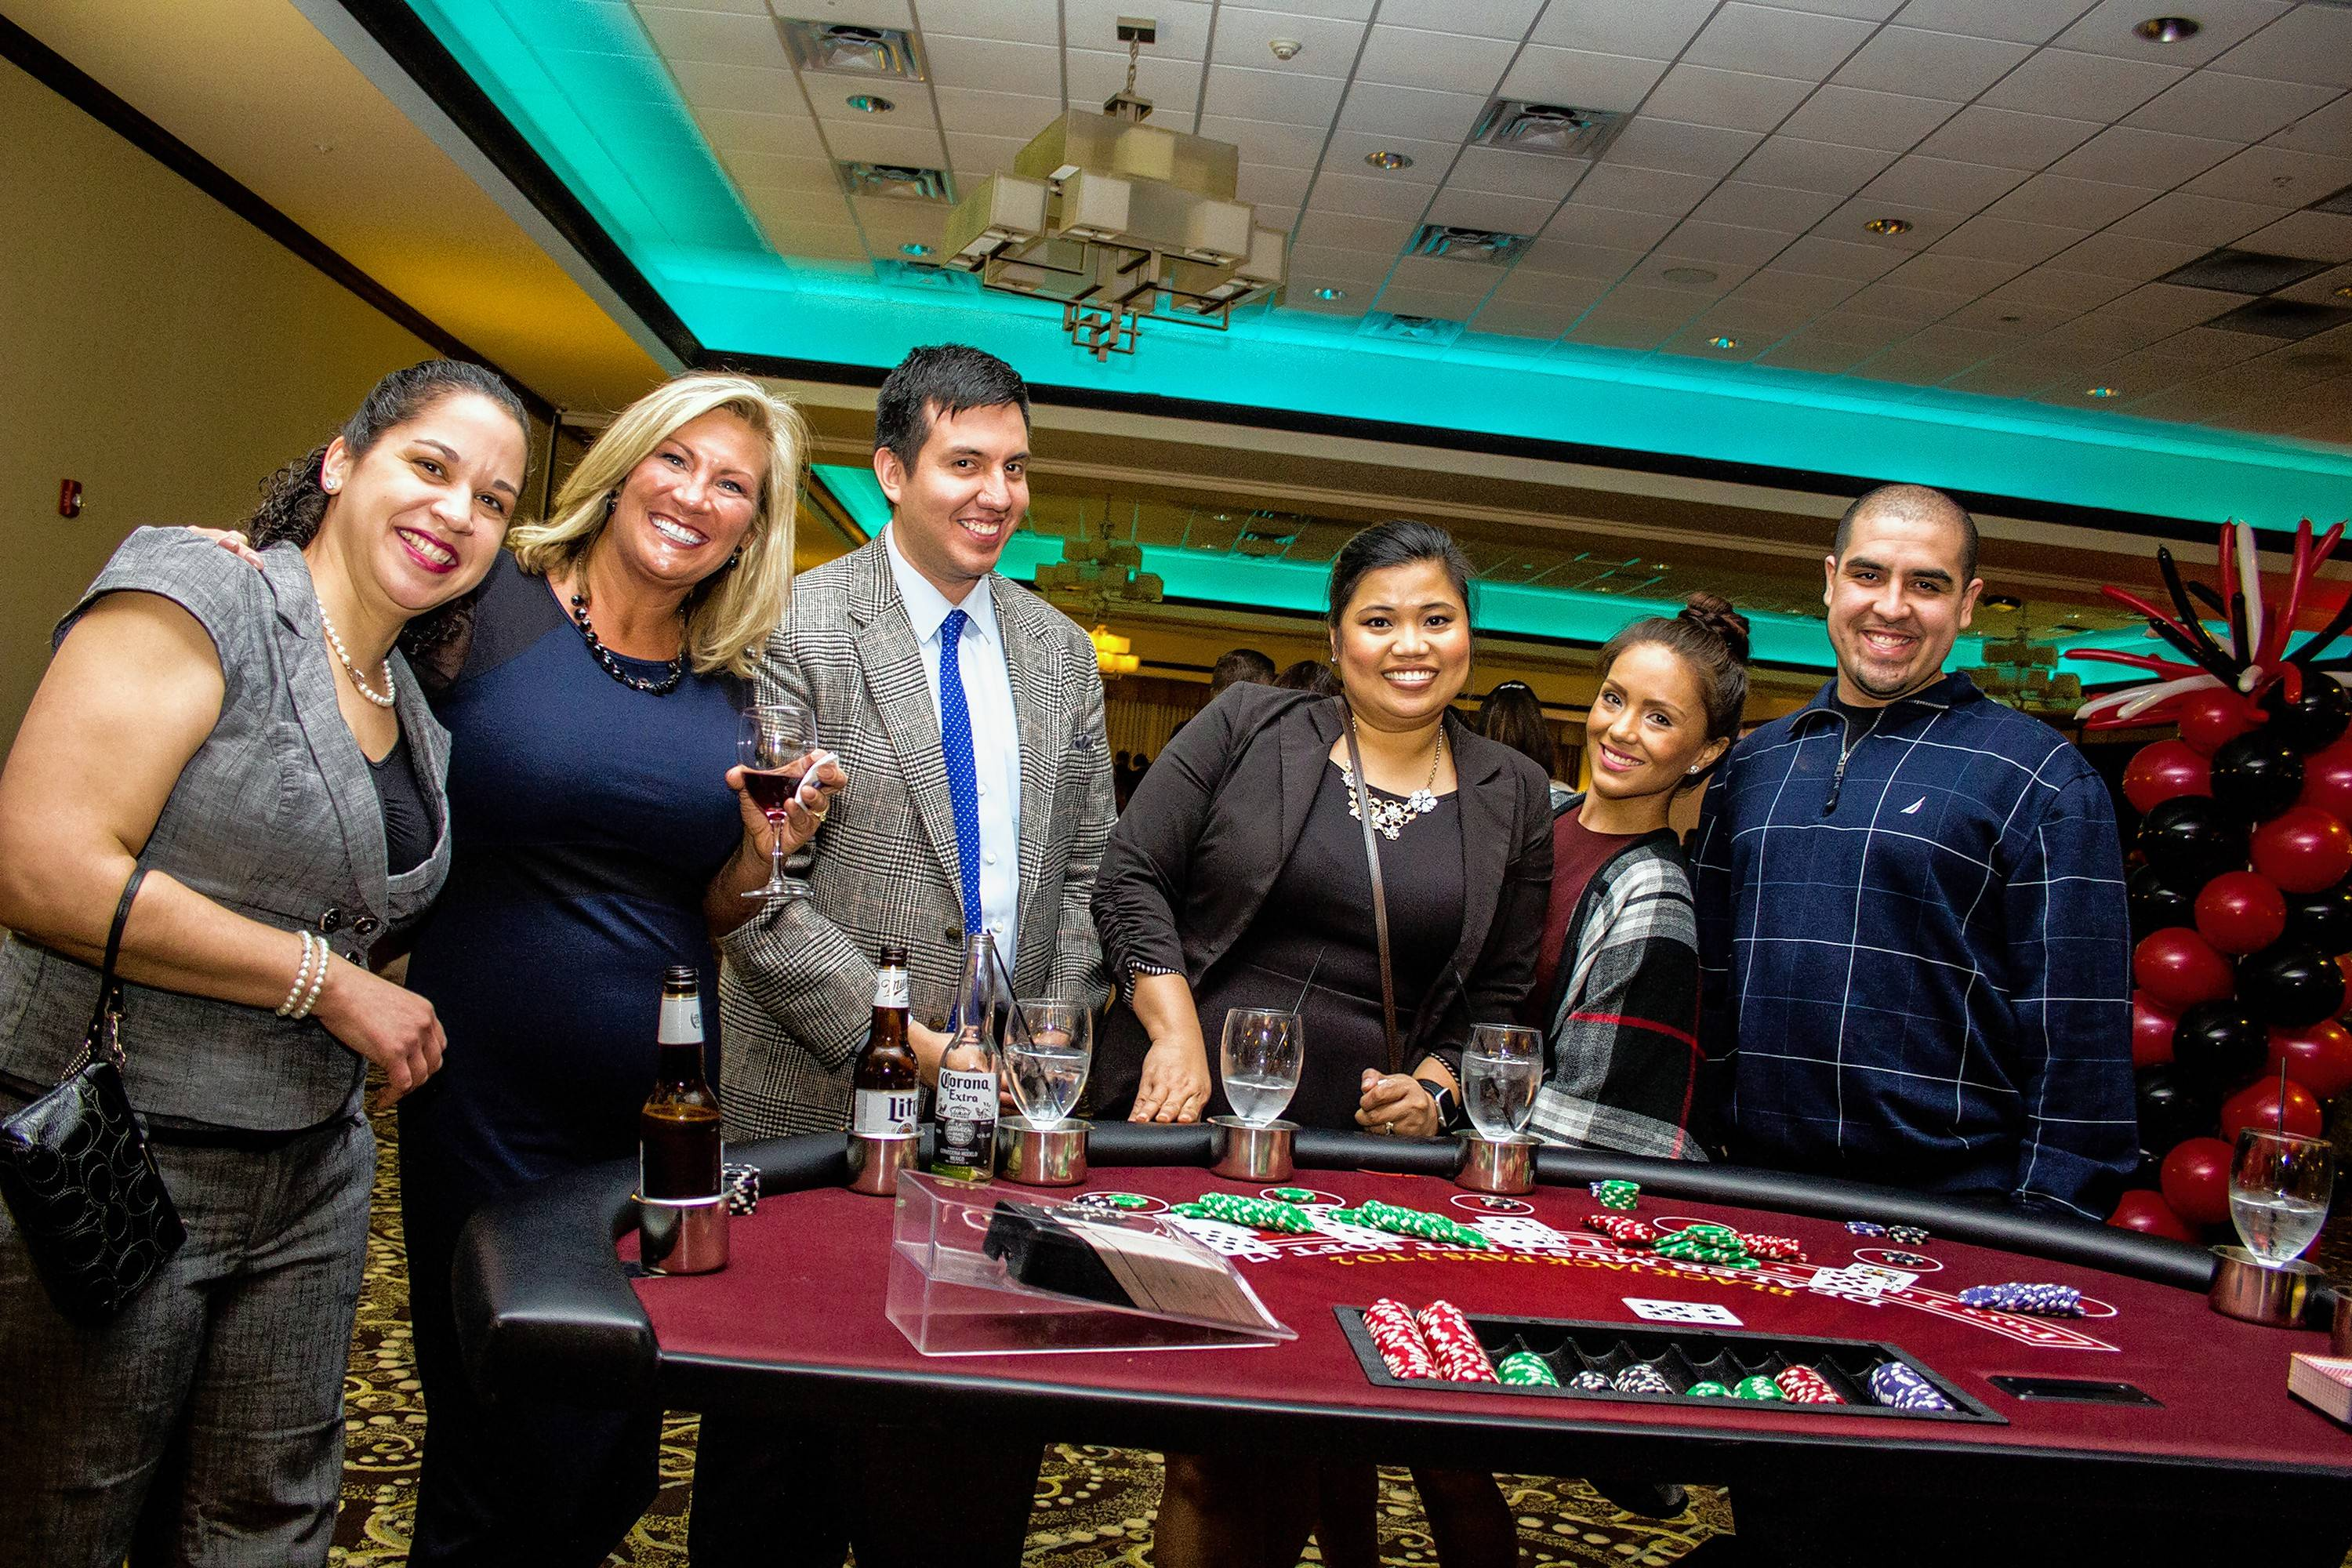 Casino Night parties can help your organization meet its fundraising goals with either licensed gaming that can raise actual cash, or by providing an unforgetting evening of entertainment while the fundraising takes place via live or silent auction or event admission tickets.